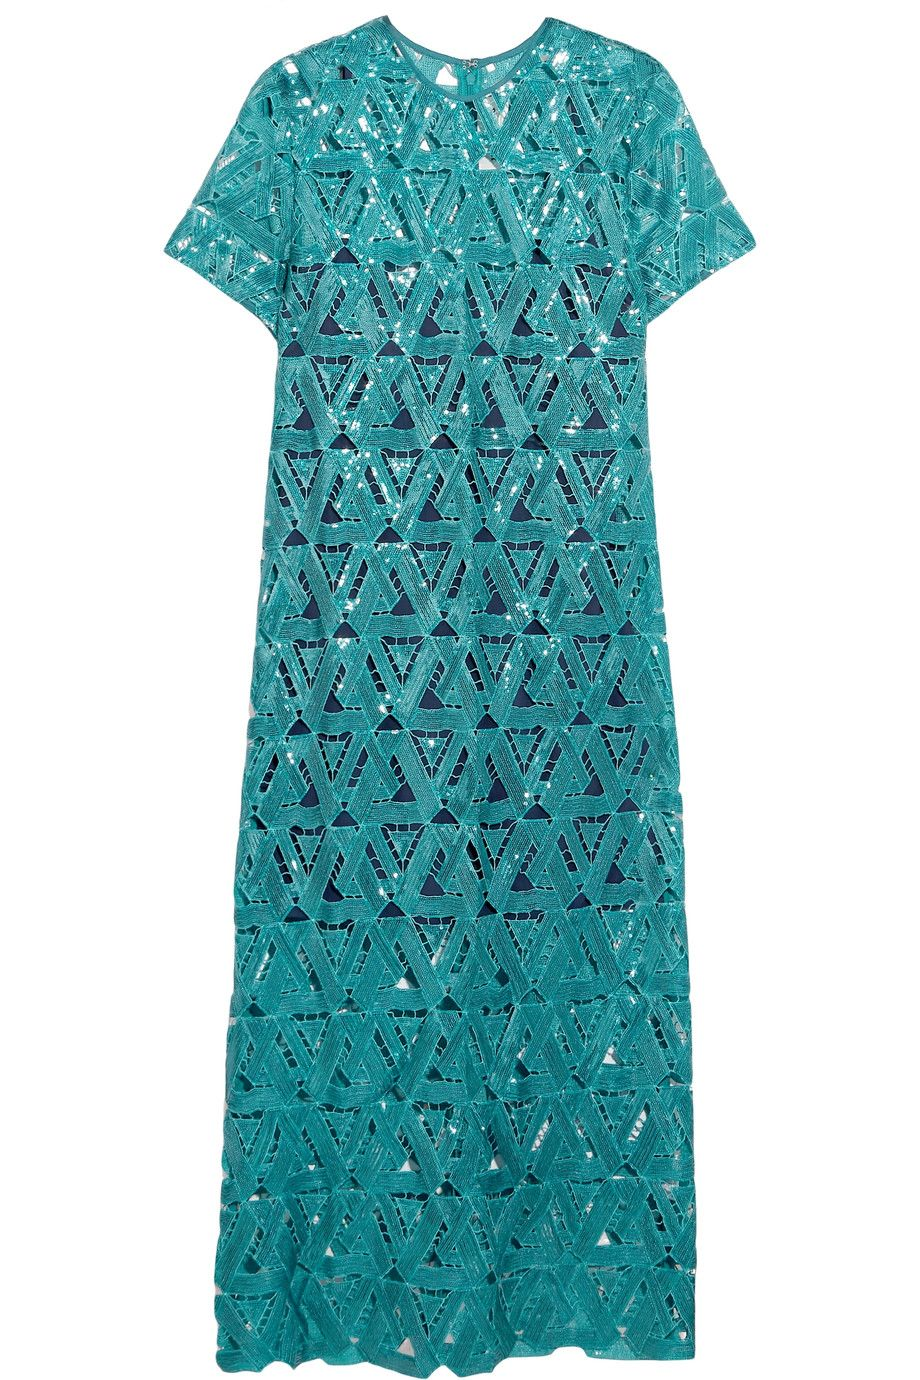 SELF-PORTRAIT Sequin-Embellished Mesh Dress. #self-portrait #cloth #dress